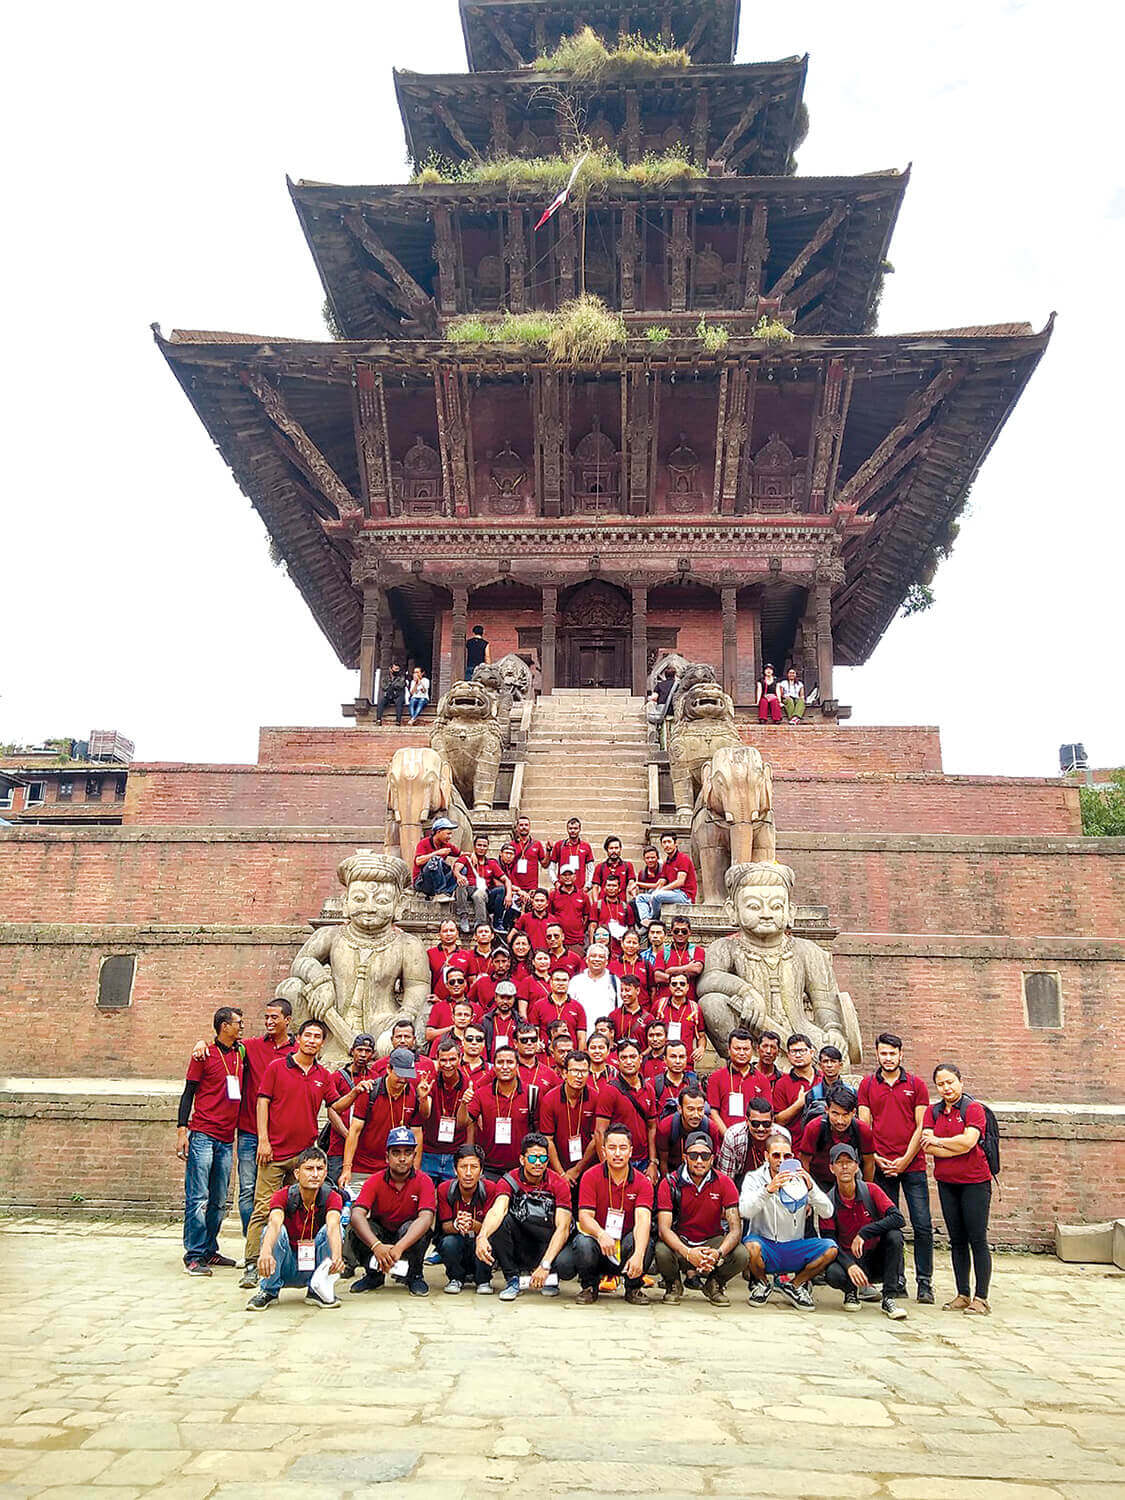 Guiding Nepal's tourism industry